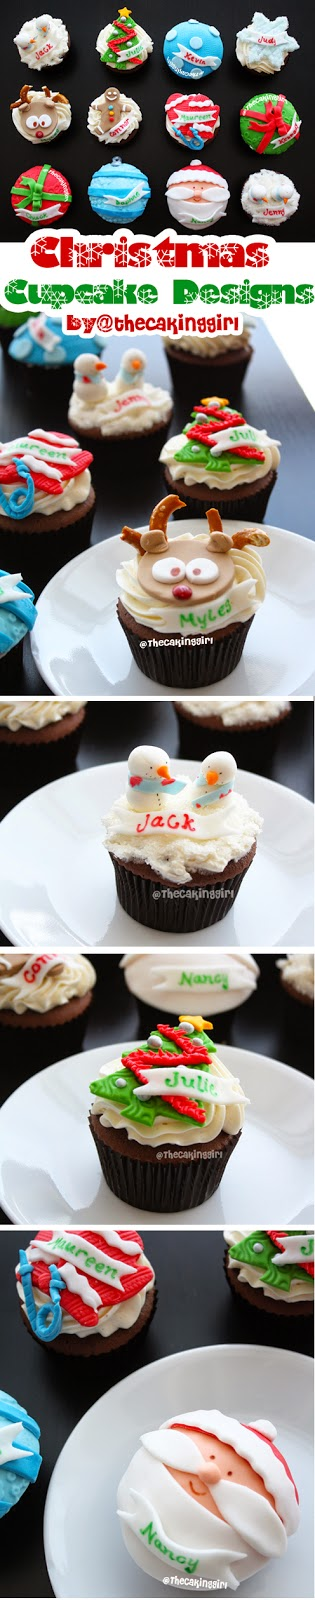 pinterest cutest christmas cupcake designs